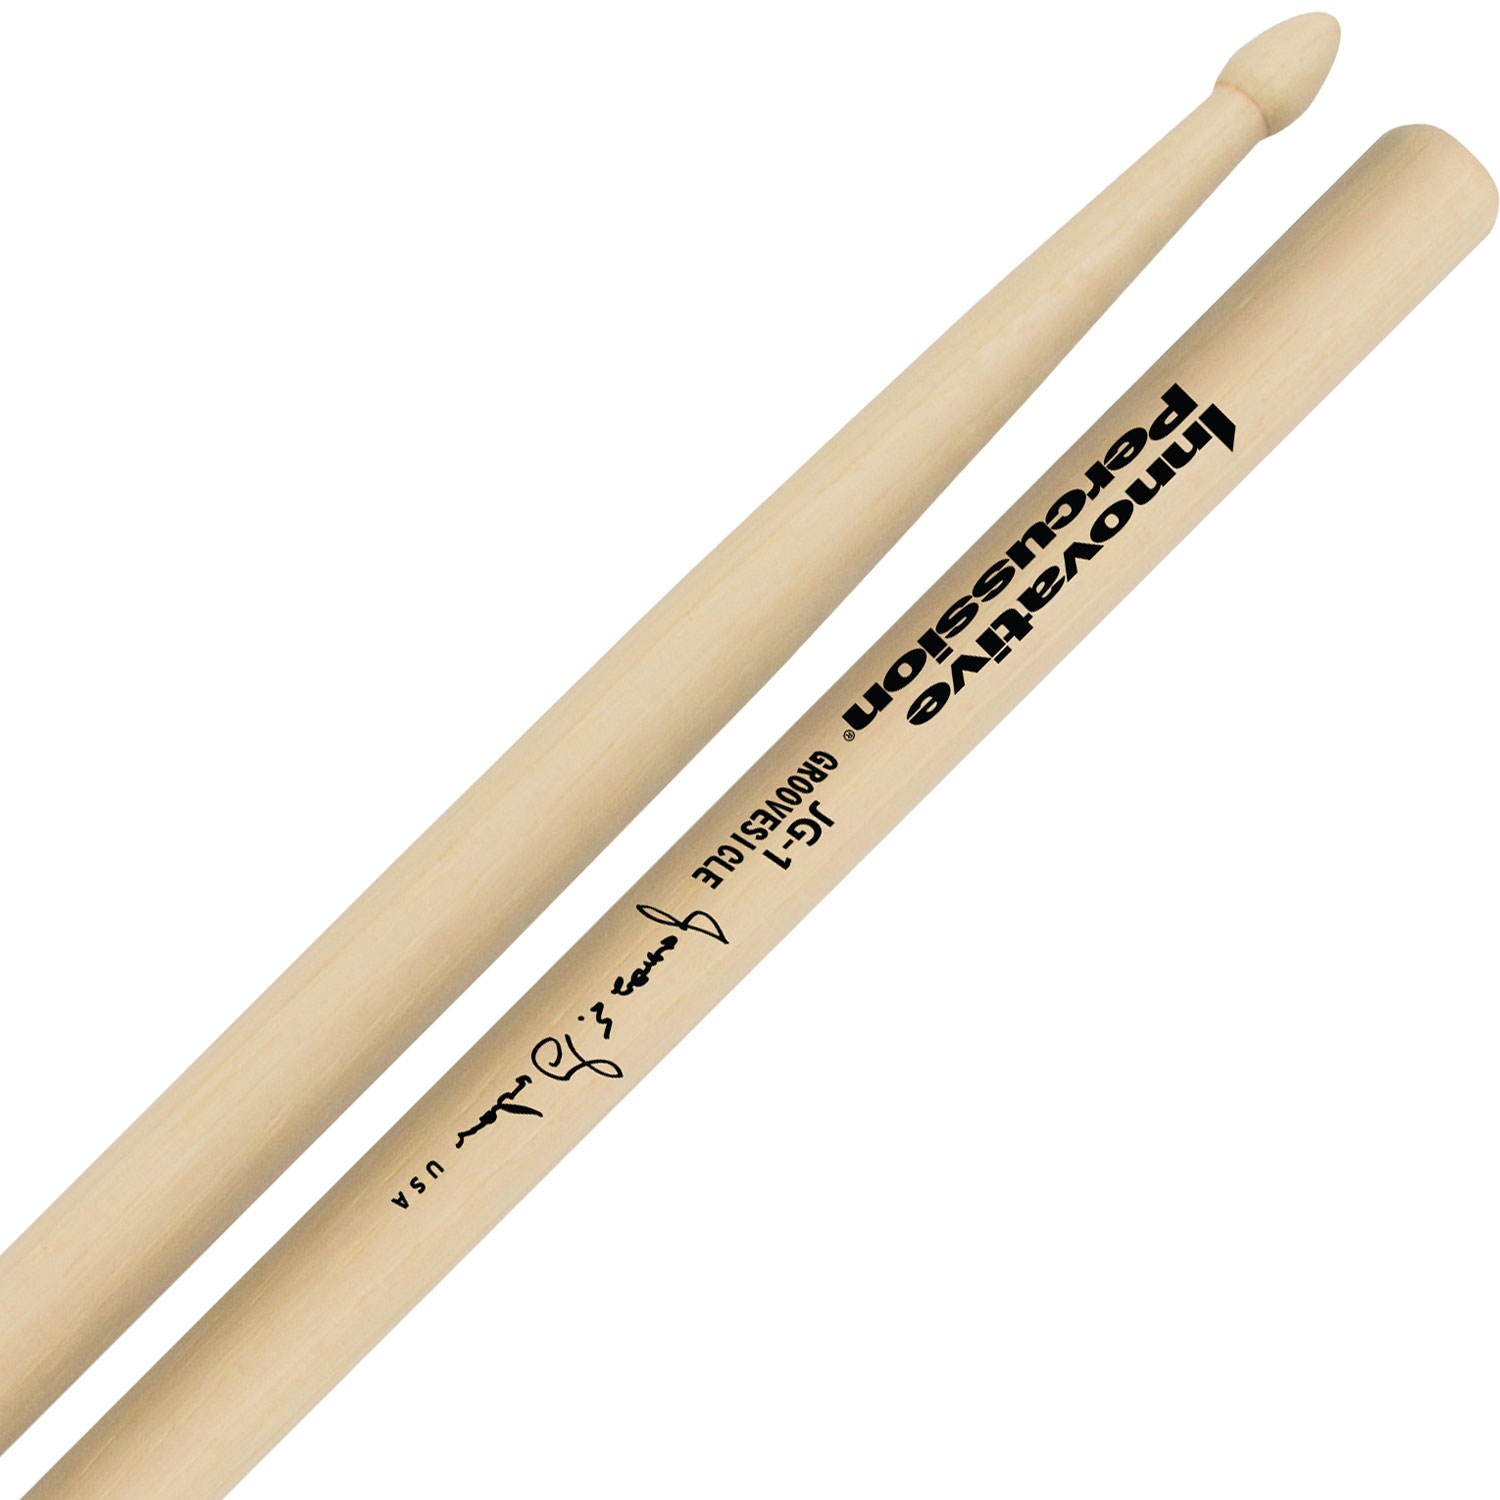 Innovative Percussion James Gadson Signature Groovesicle Drum Sticks